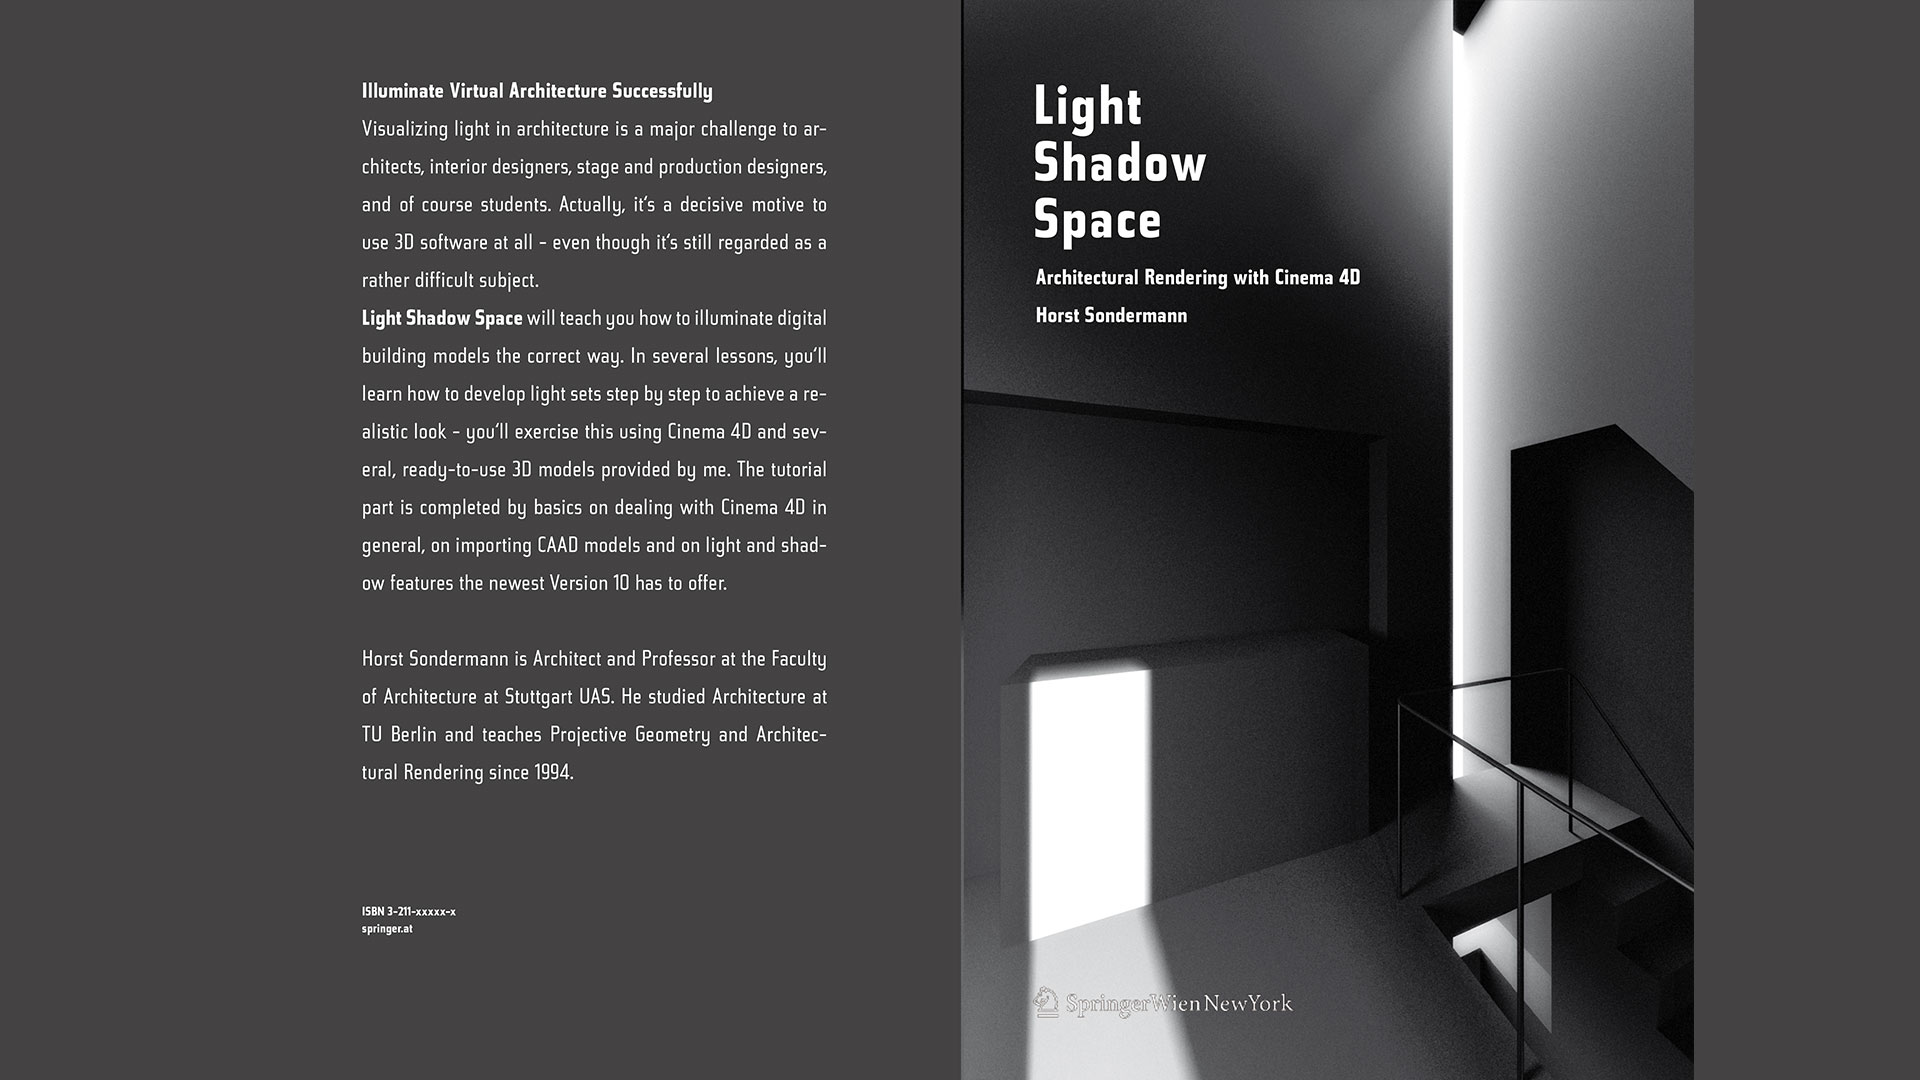 Light Shadow Space - Architecture in Cinema4D - Horst Sondermann